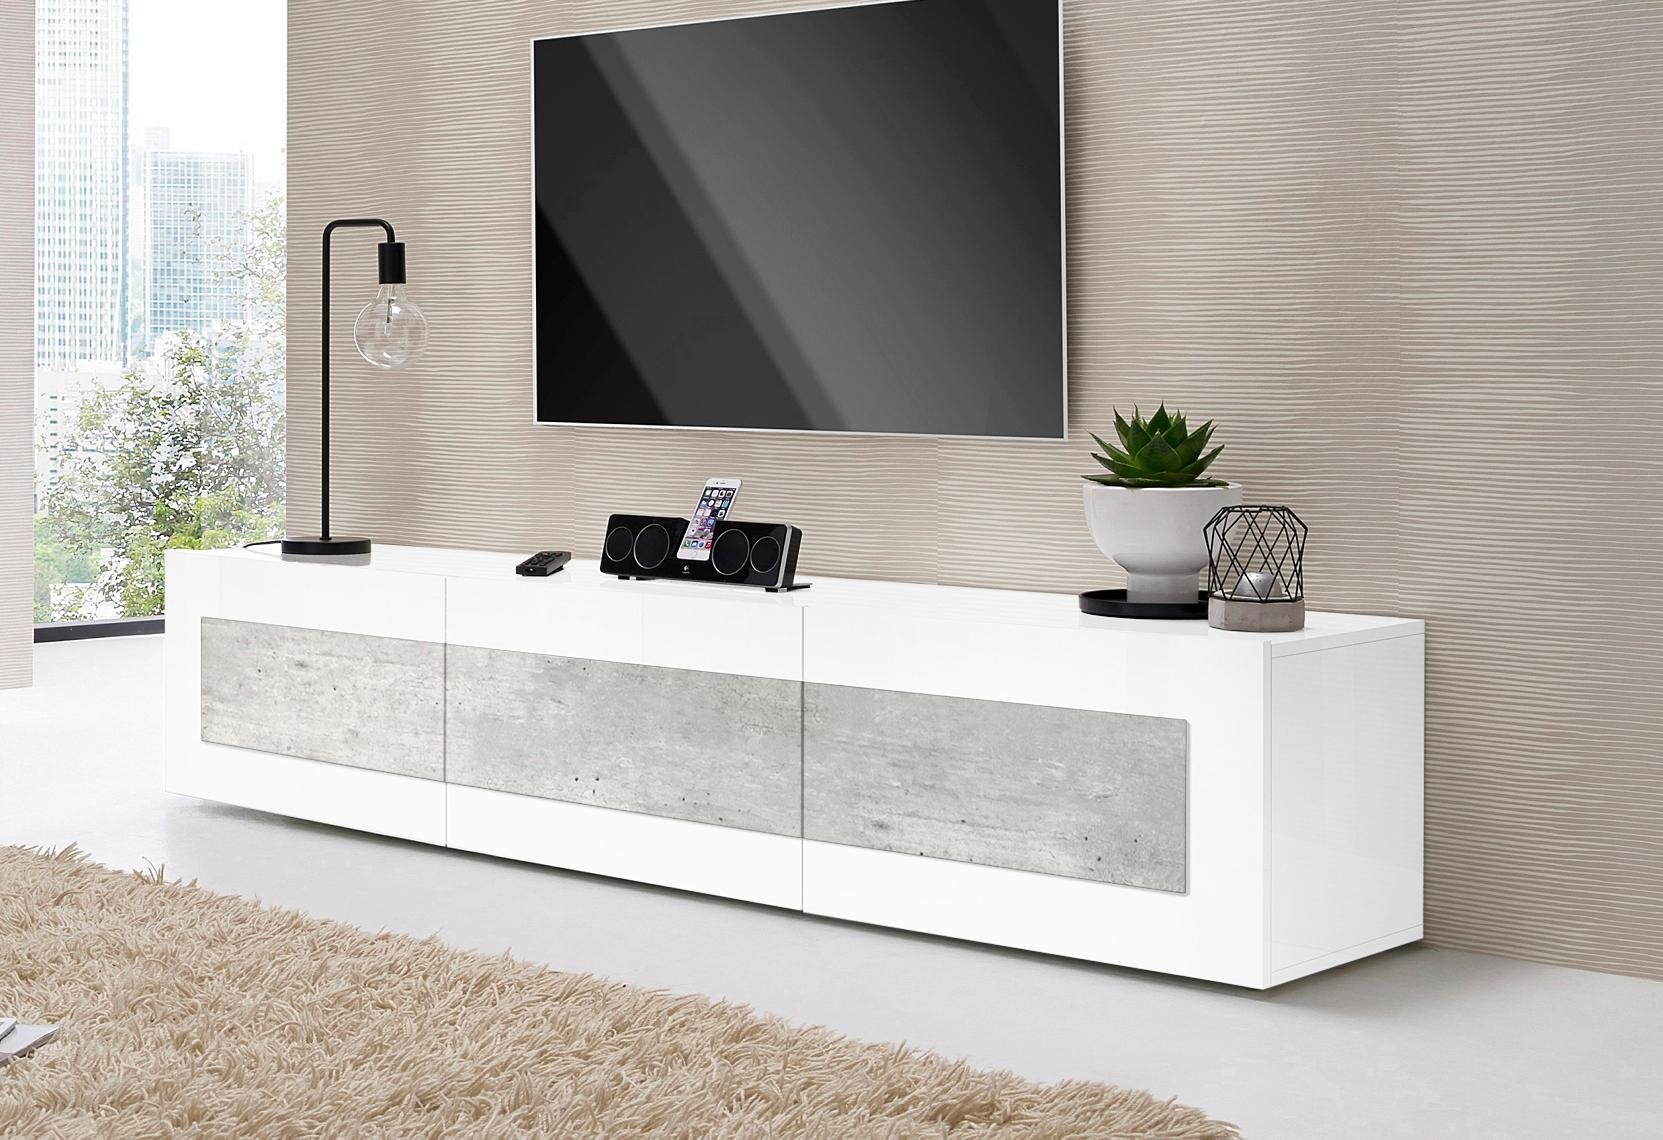 tv meubel 240 cm breed stunning tv meubel 240 cm breed with tv meubel 240 cm breed excellent. Black Bedroom Furniture Sets. Home Design Ideas